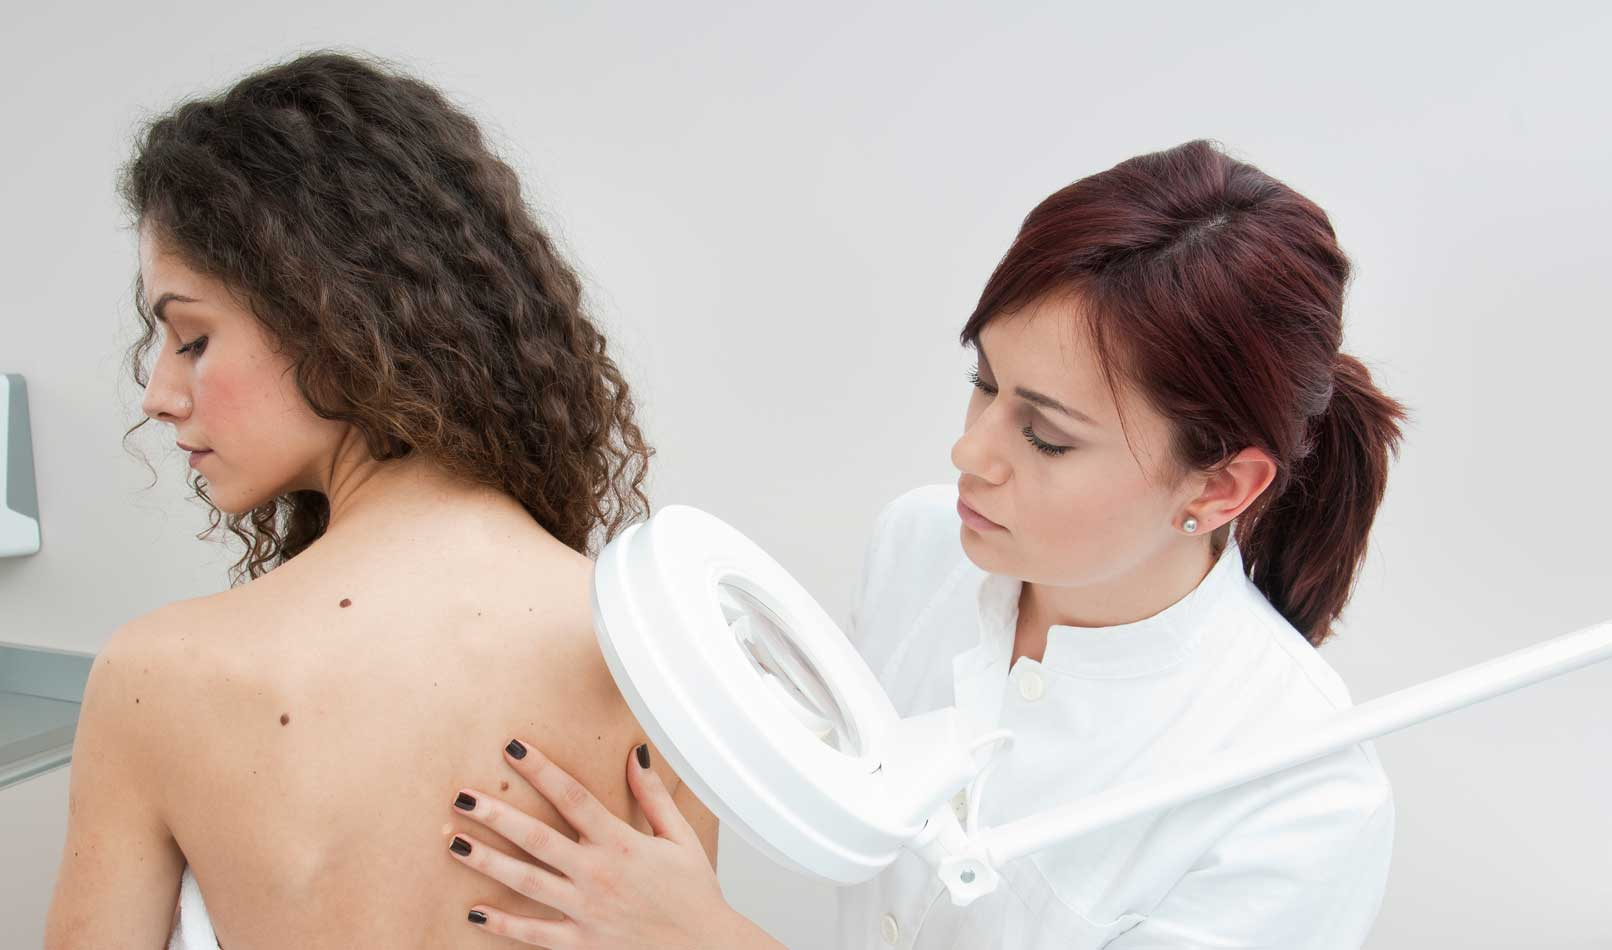 doctor-checking-patient-back